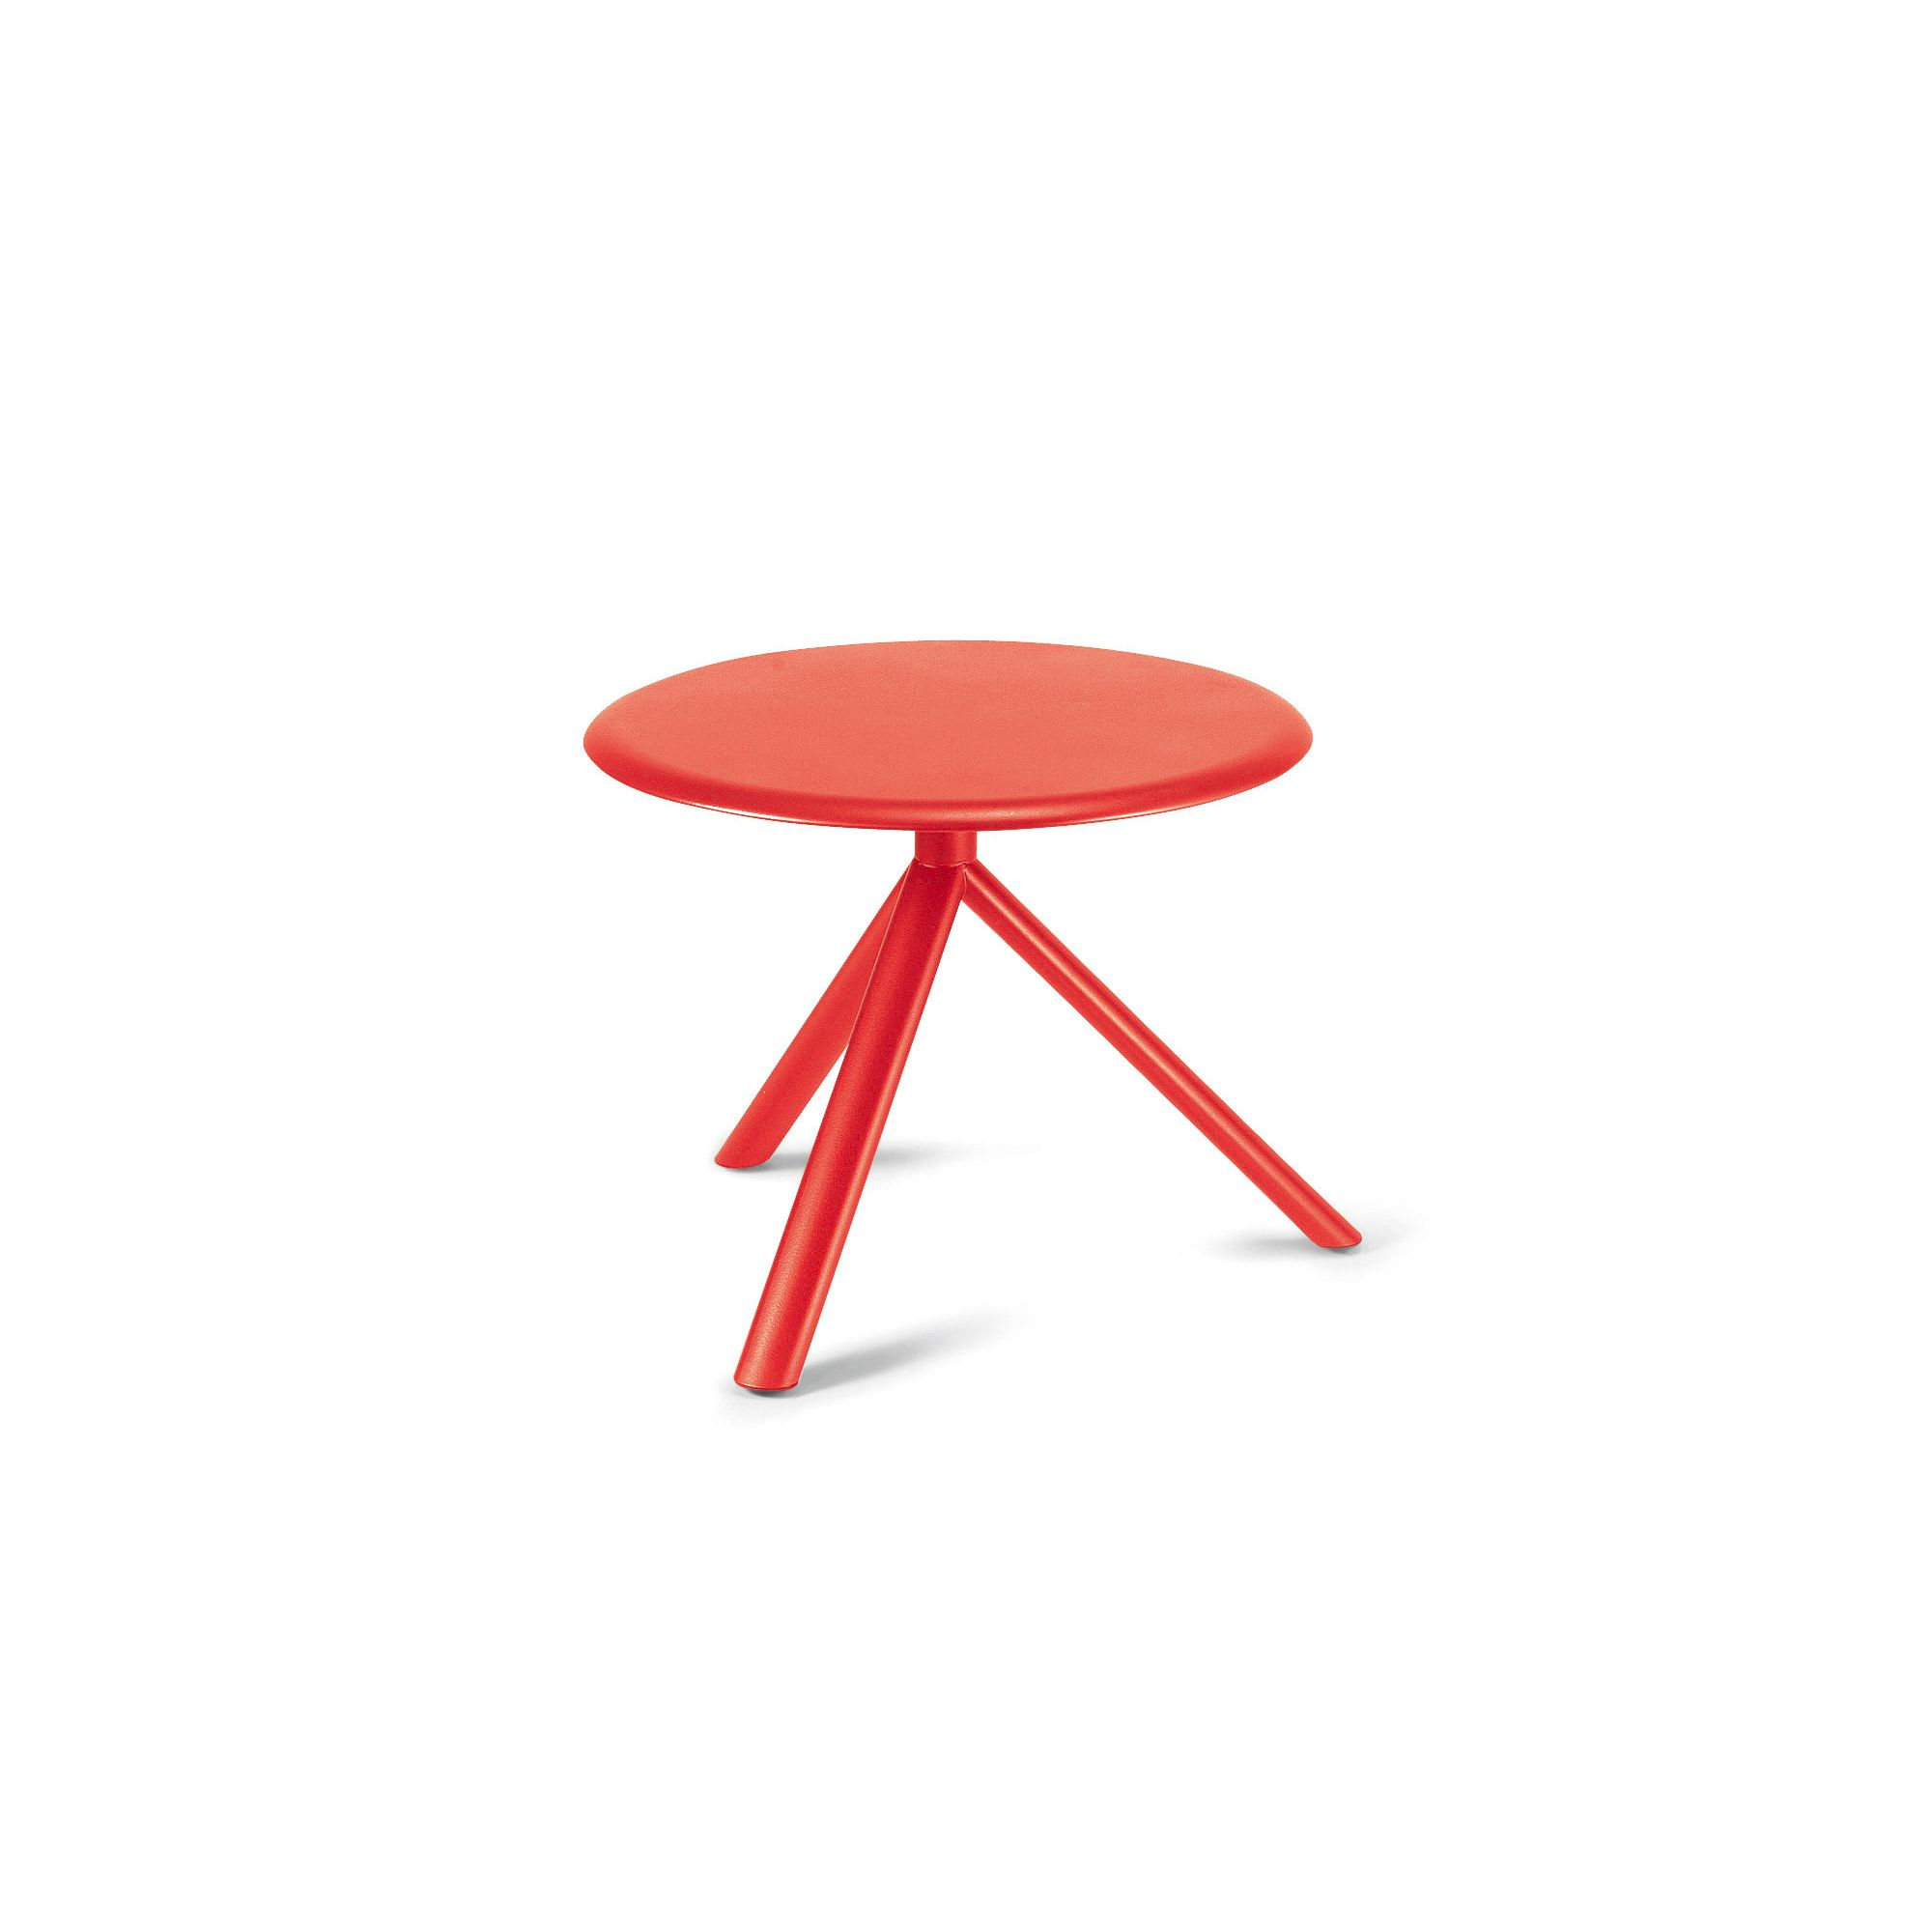 Plank Miura Round Table with Metal Table Top - 45cm - Traffic red at Tesco Direct